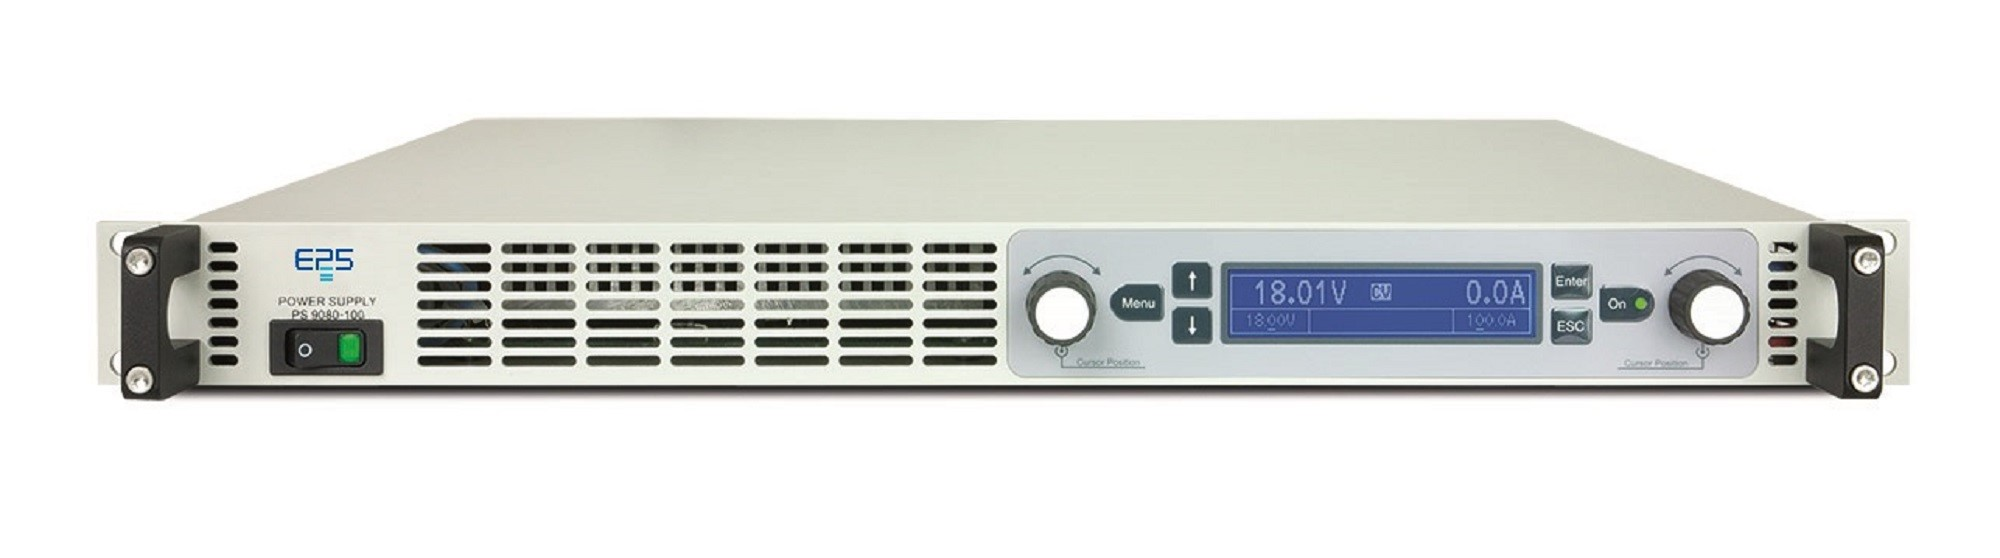 E/PS 9000-1U Laboratory Power Supply 1500/3000 W